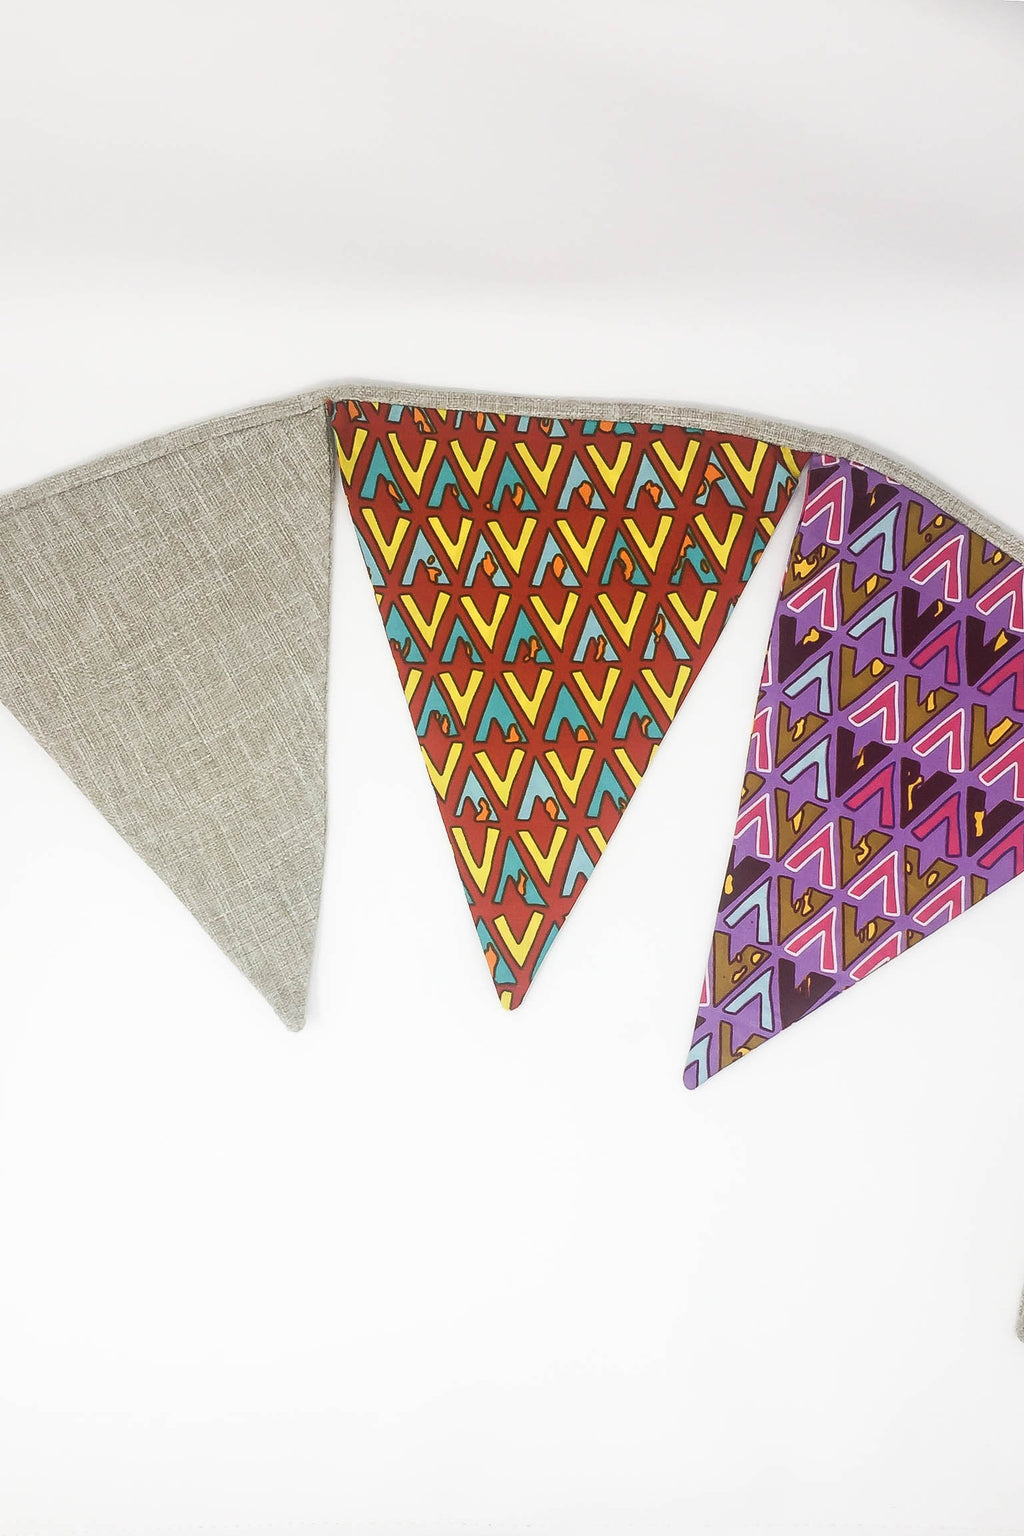 Bunting - Purple / Red